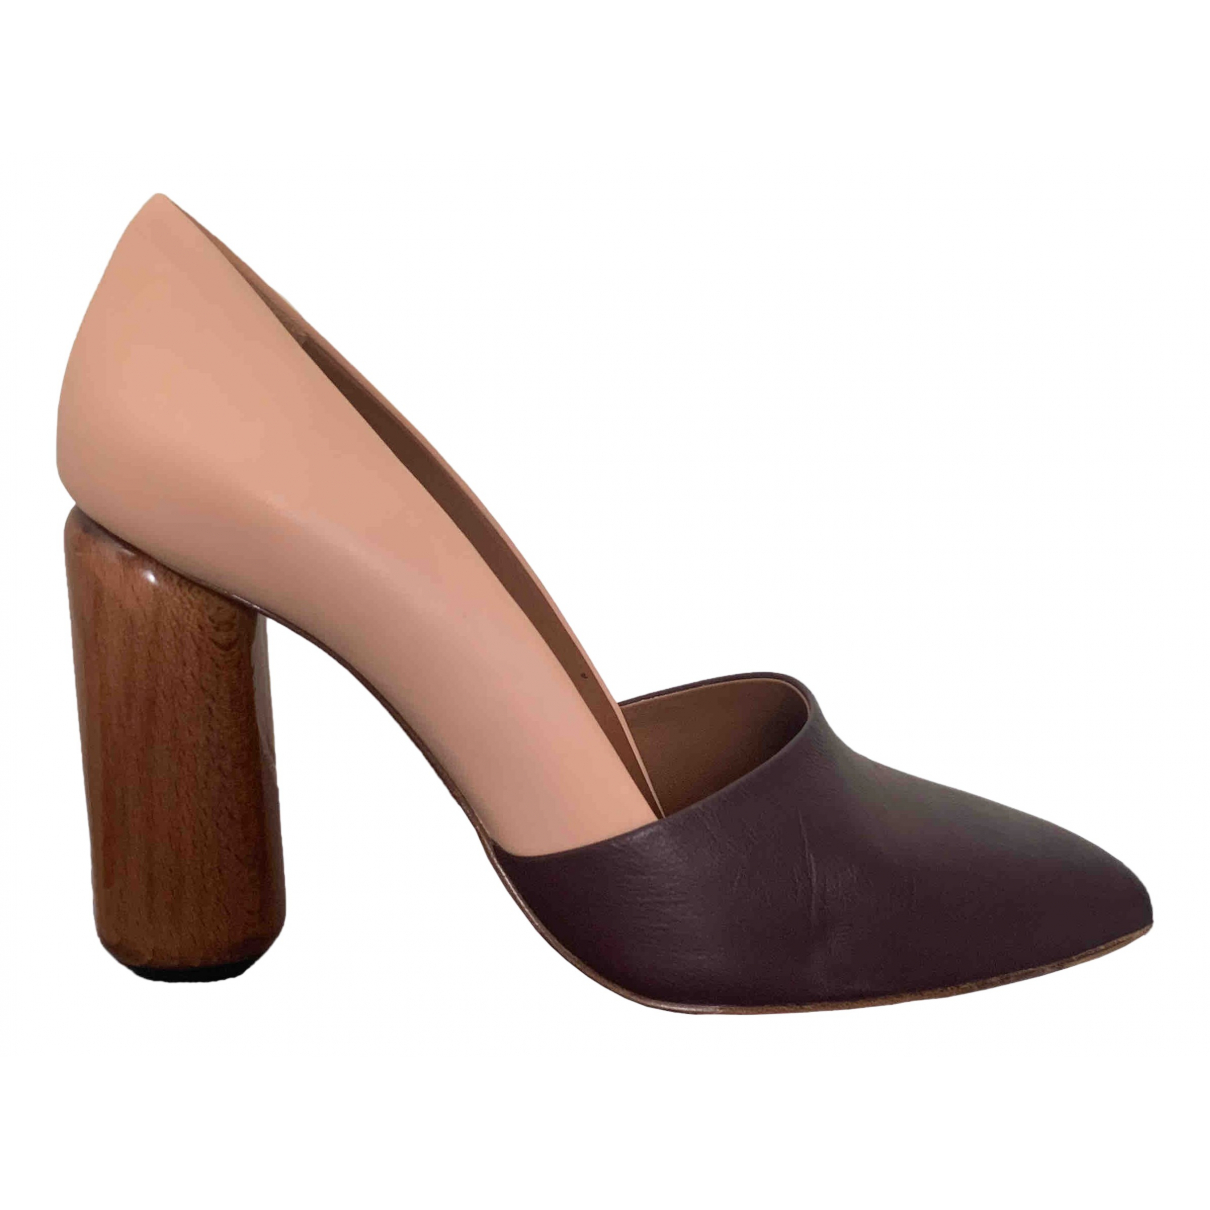 Mulberry \N Multicolour Leather Heels for Women 40 EU